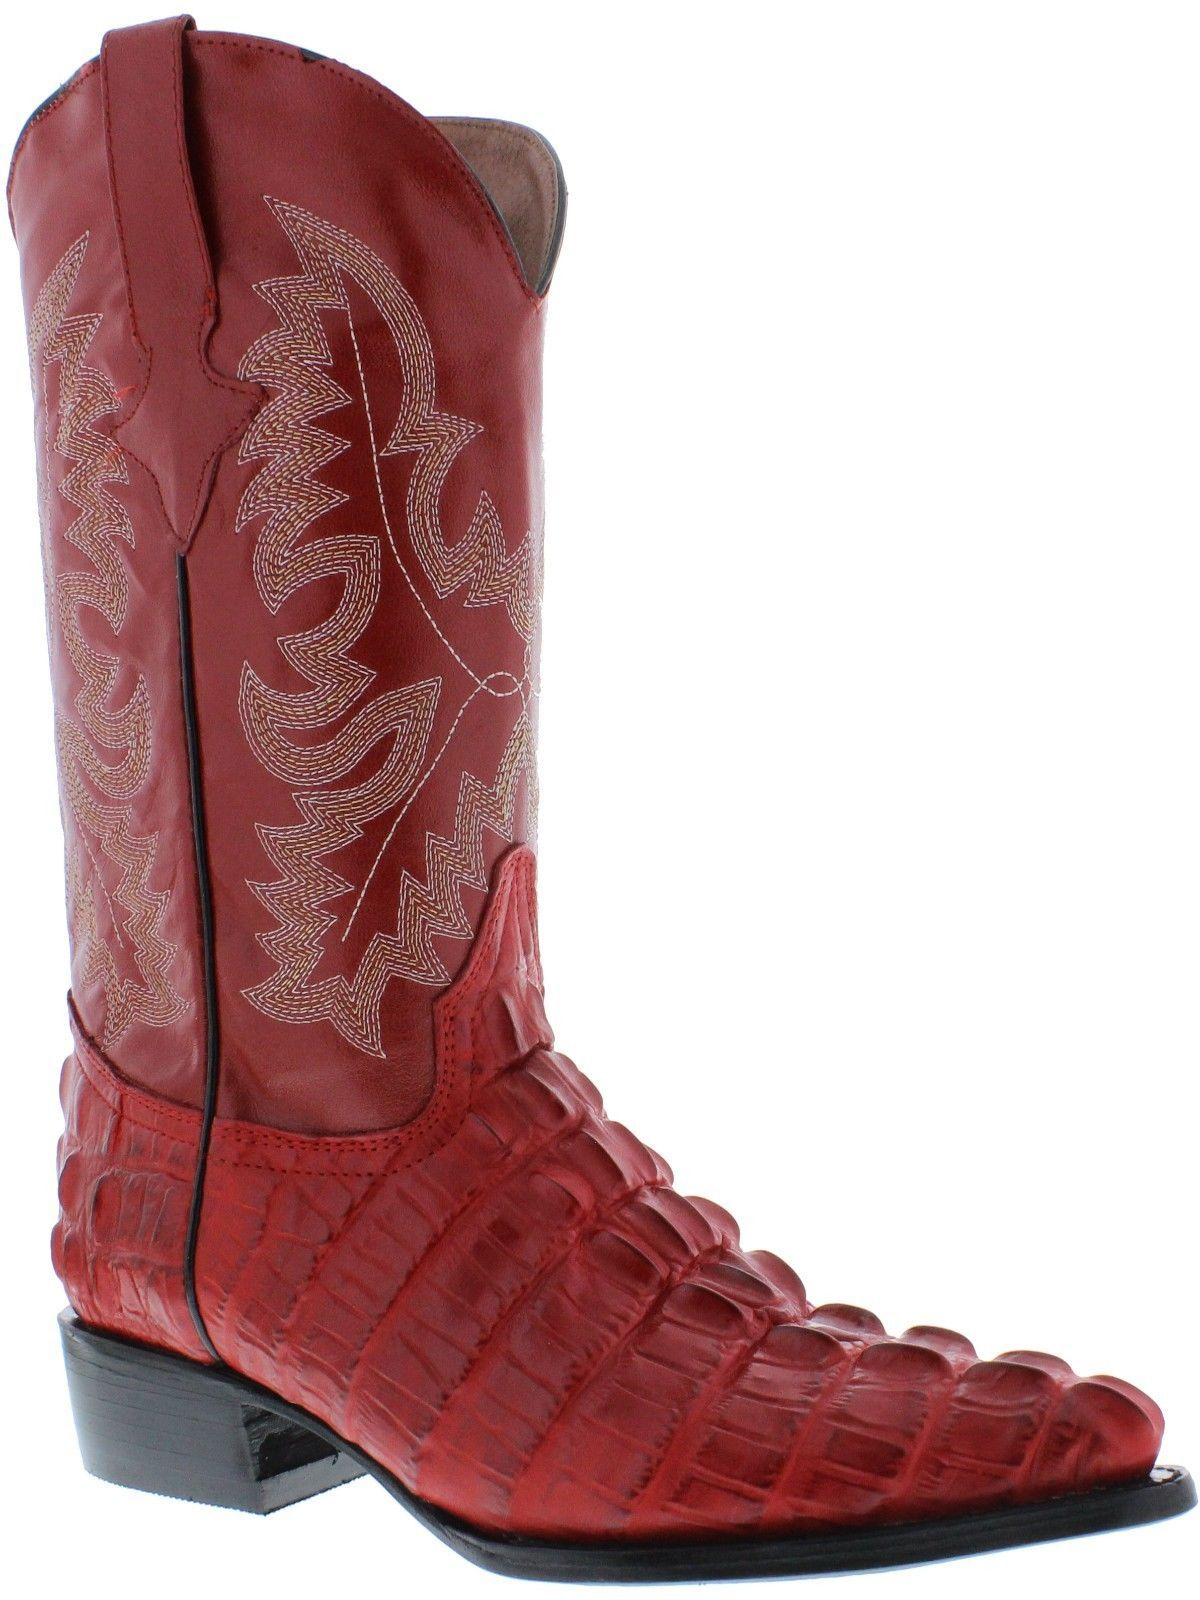 Details about Men's red leather crocodile alligator tail cowboy ...